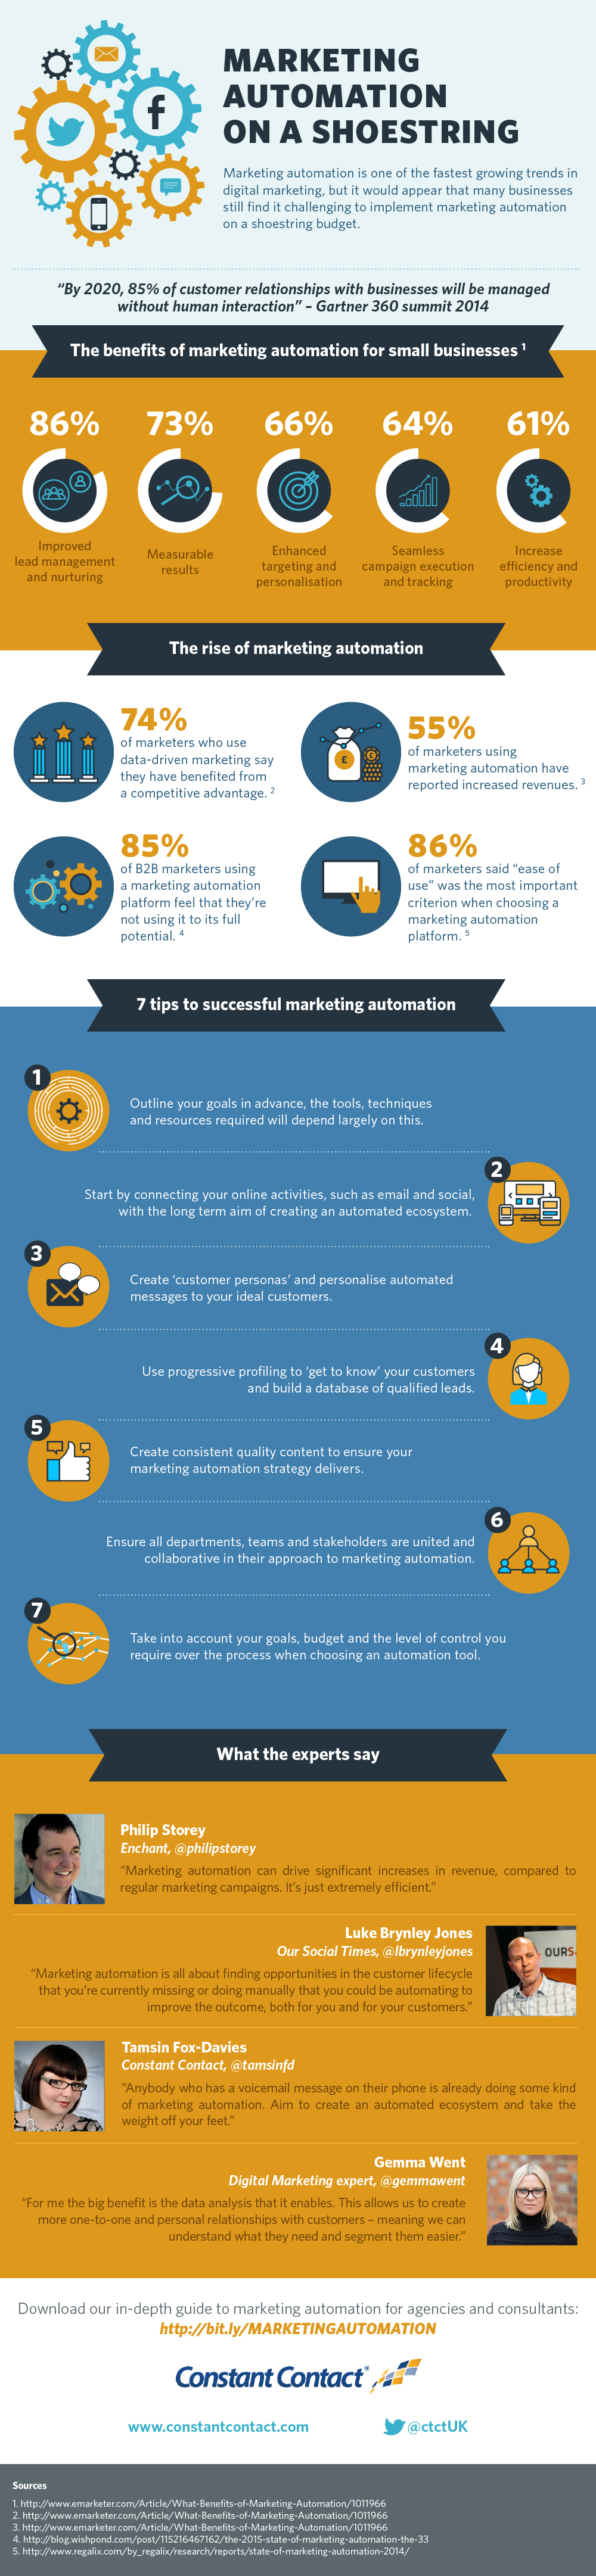 Benefits of Marketing Automation for Small Businesses